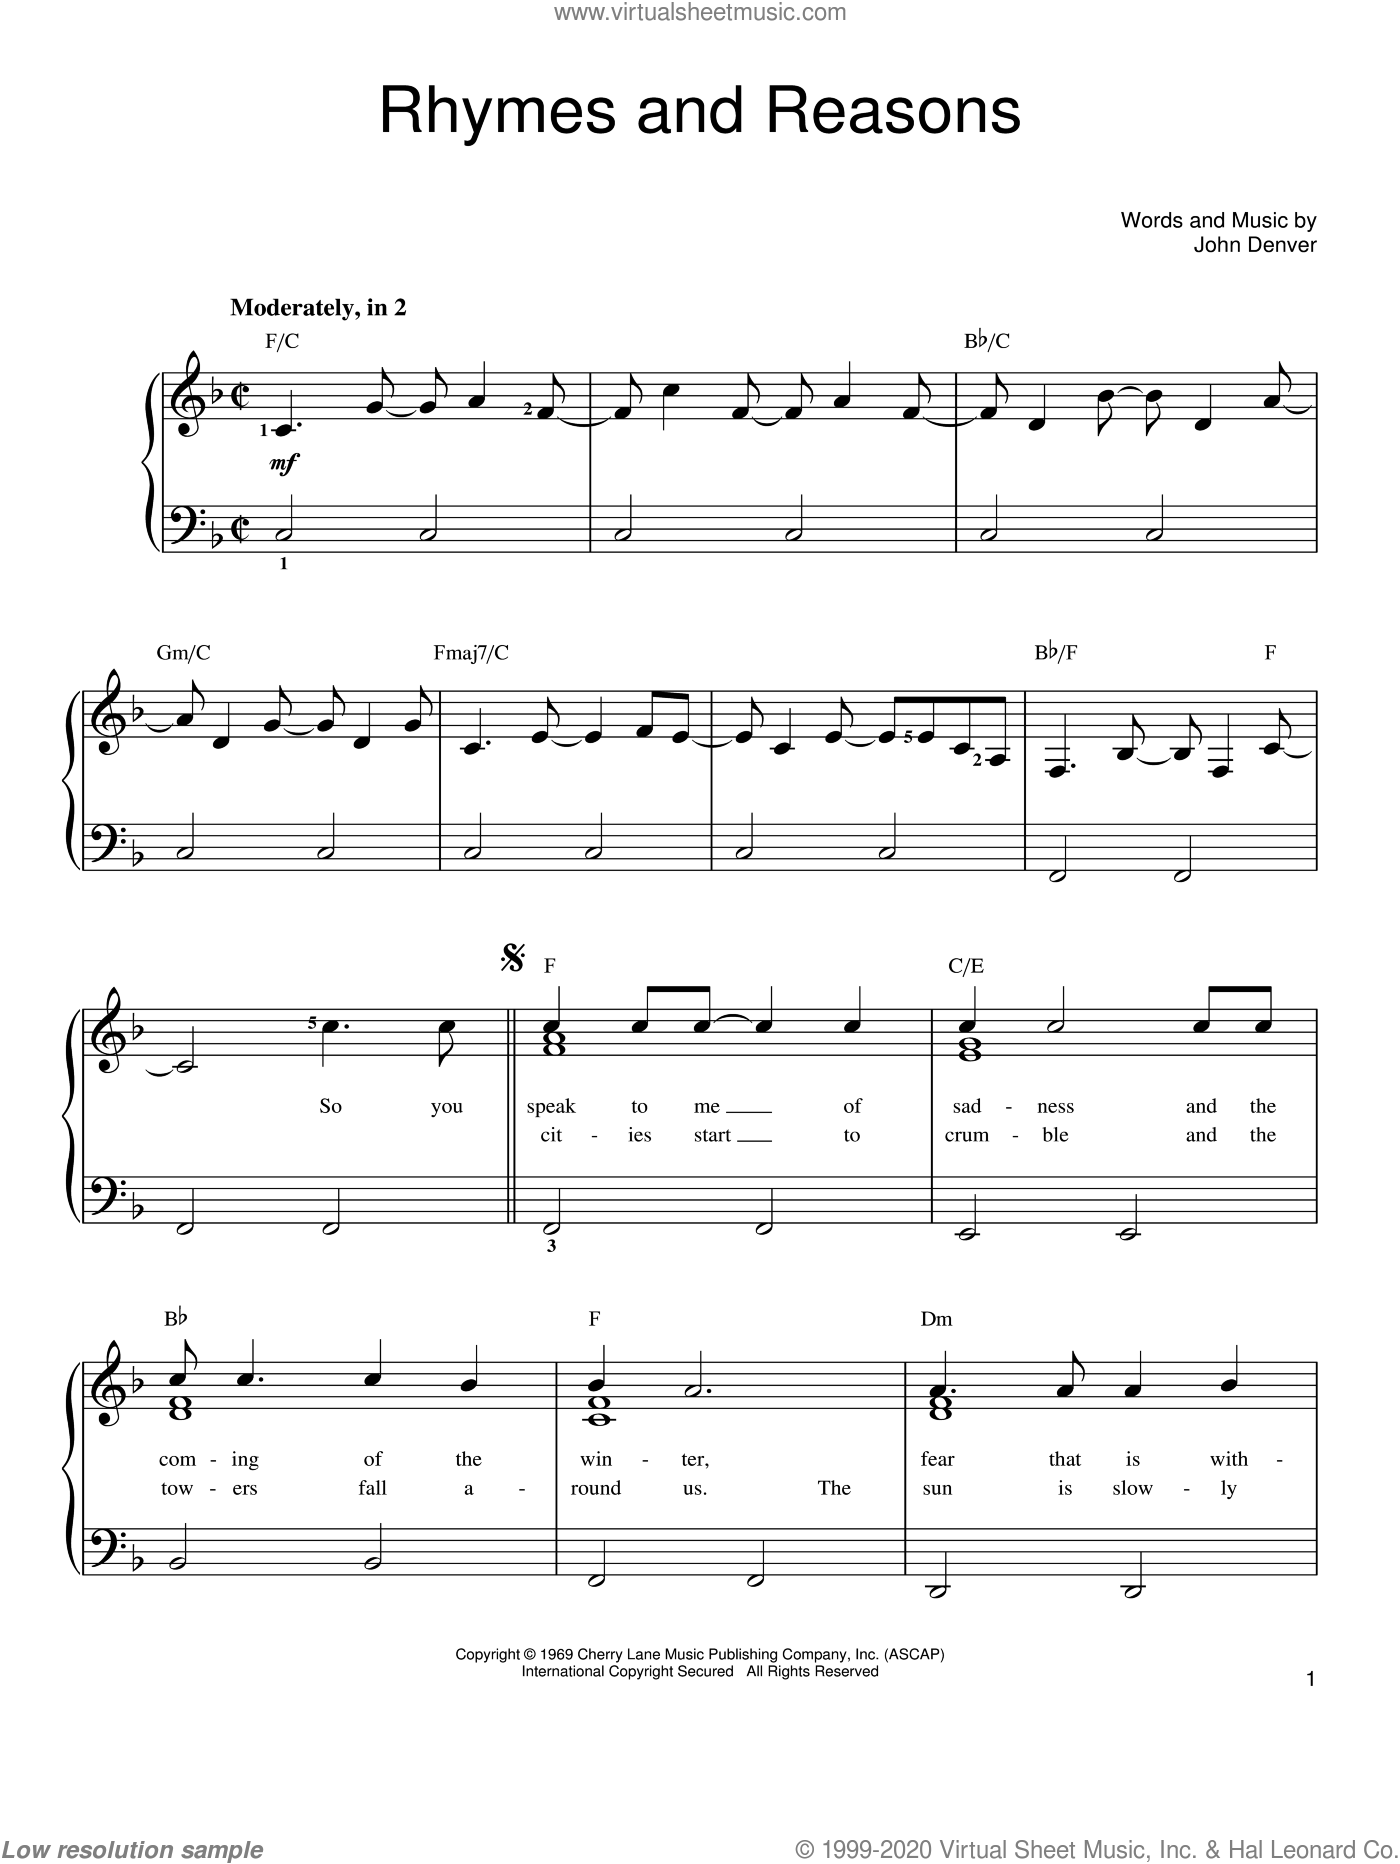 Rhymes And Reasons sheet music for piano solo by John Denver, easy skill level